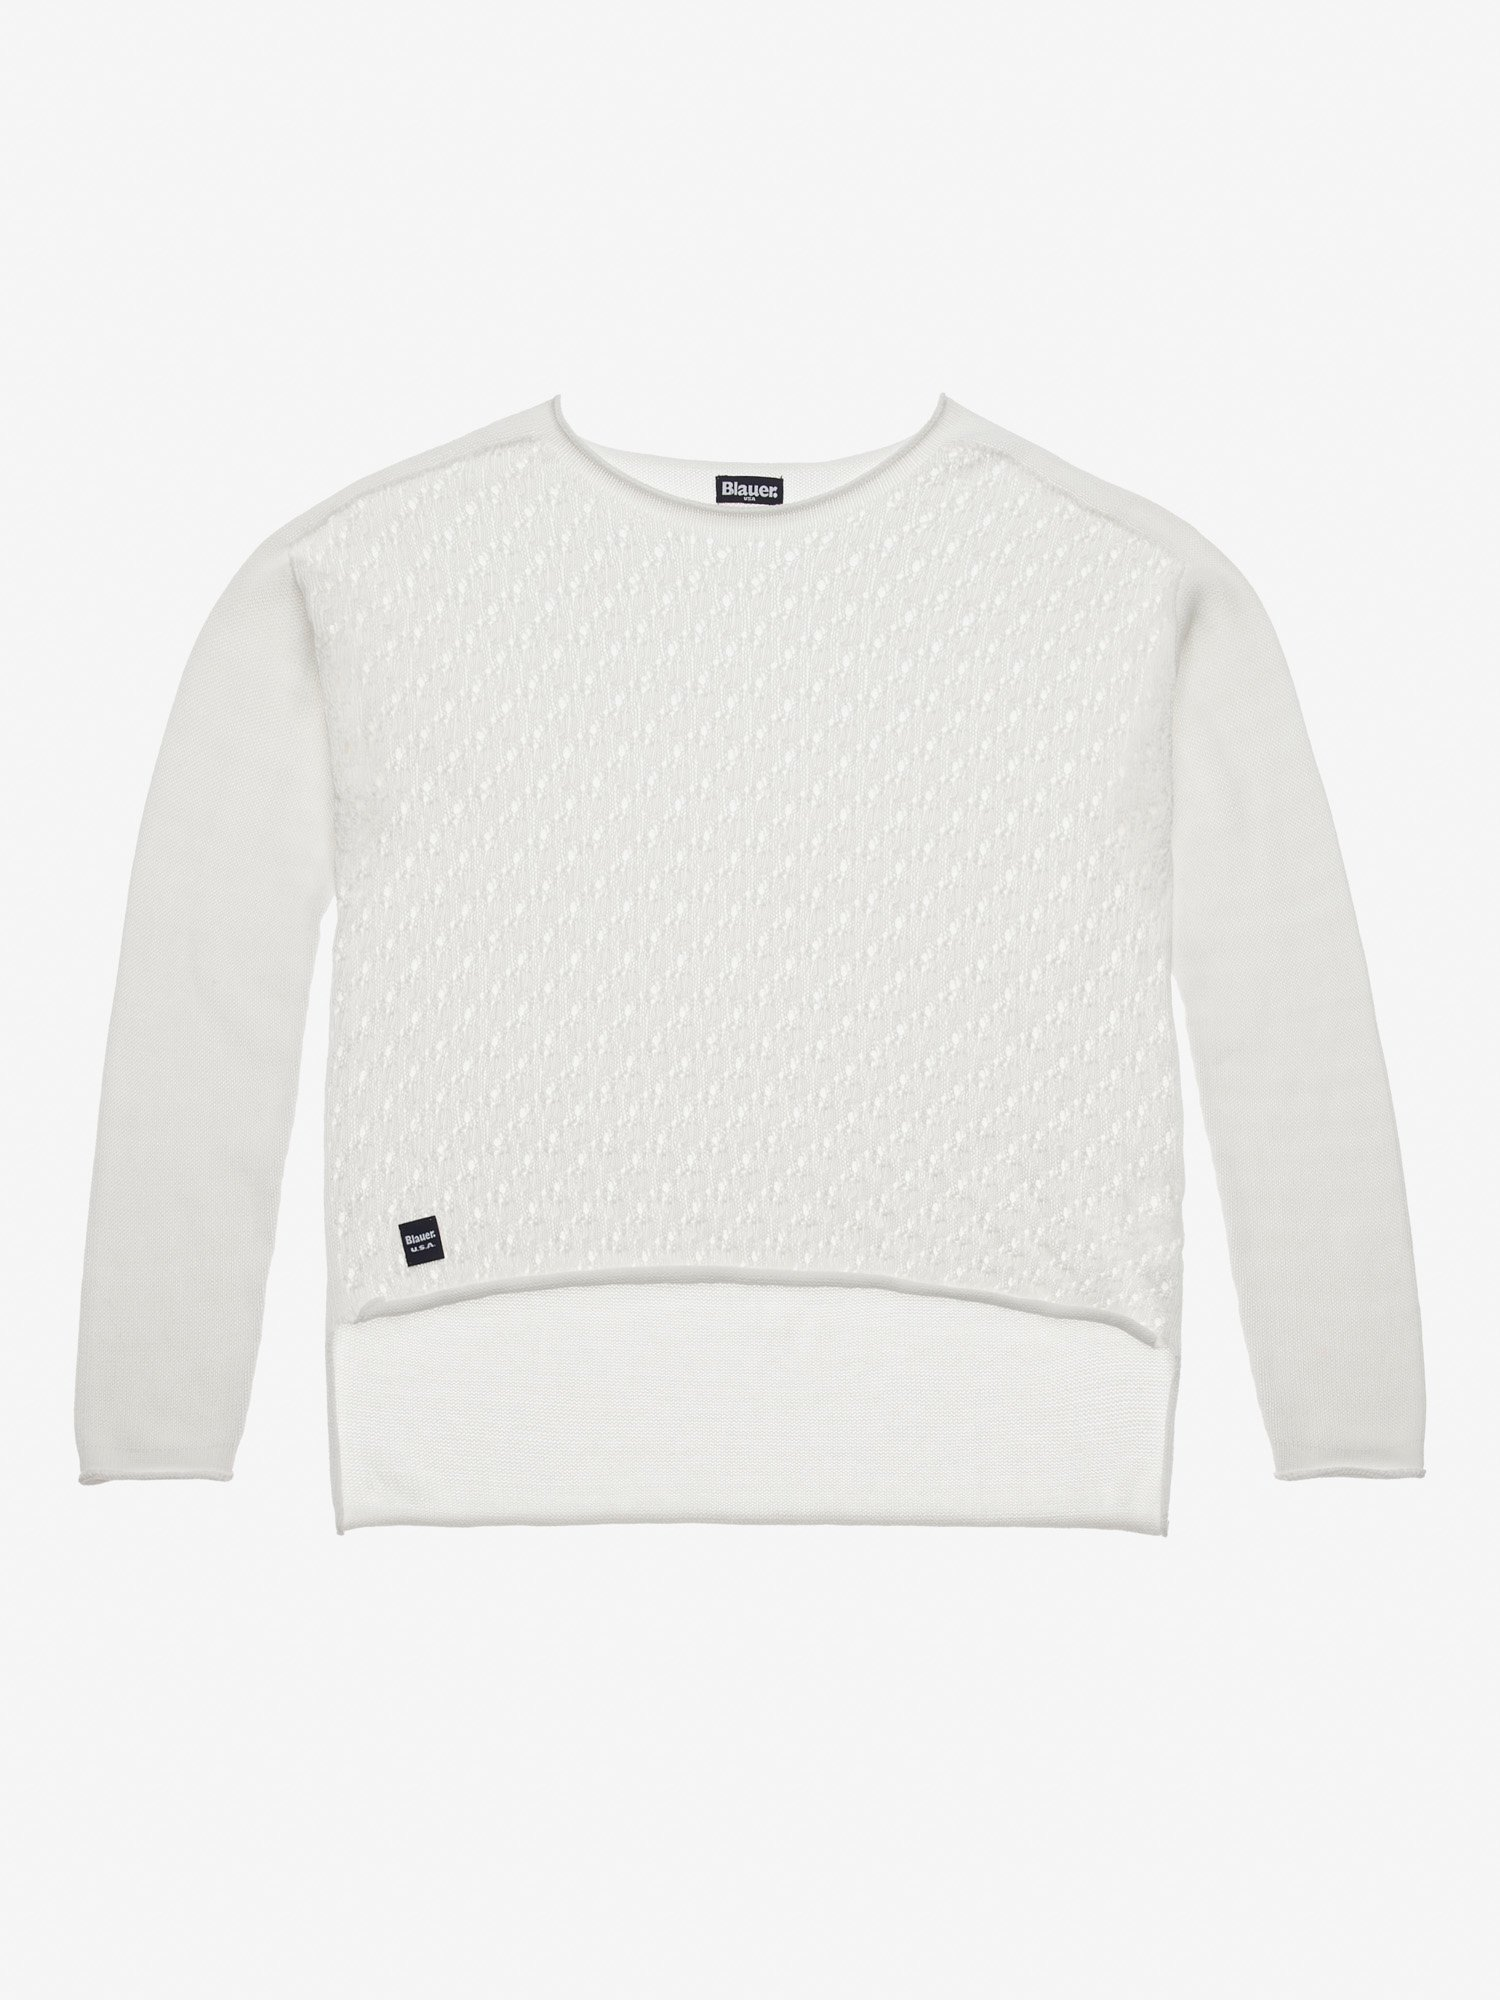 Blauer - SWEATER WITH OPEN KNIT IN FRONT - Ivory - Blauer